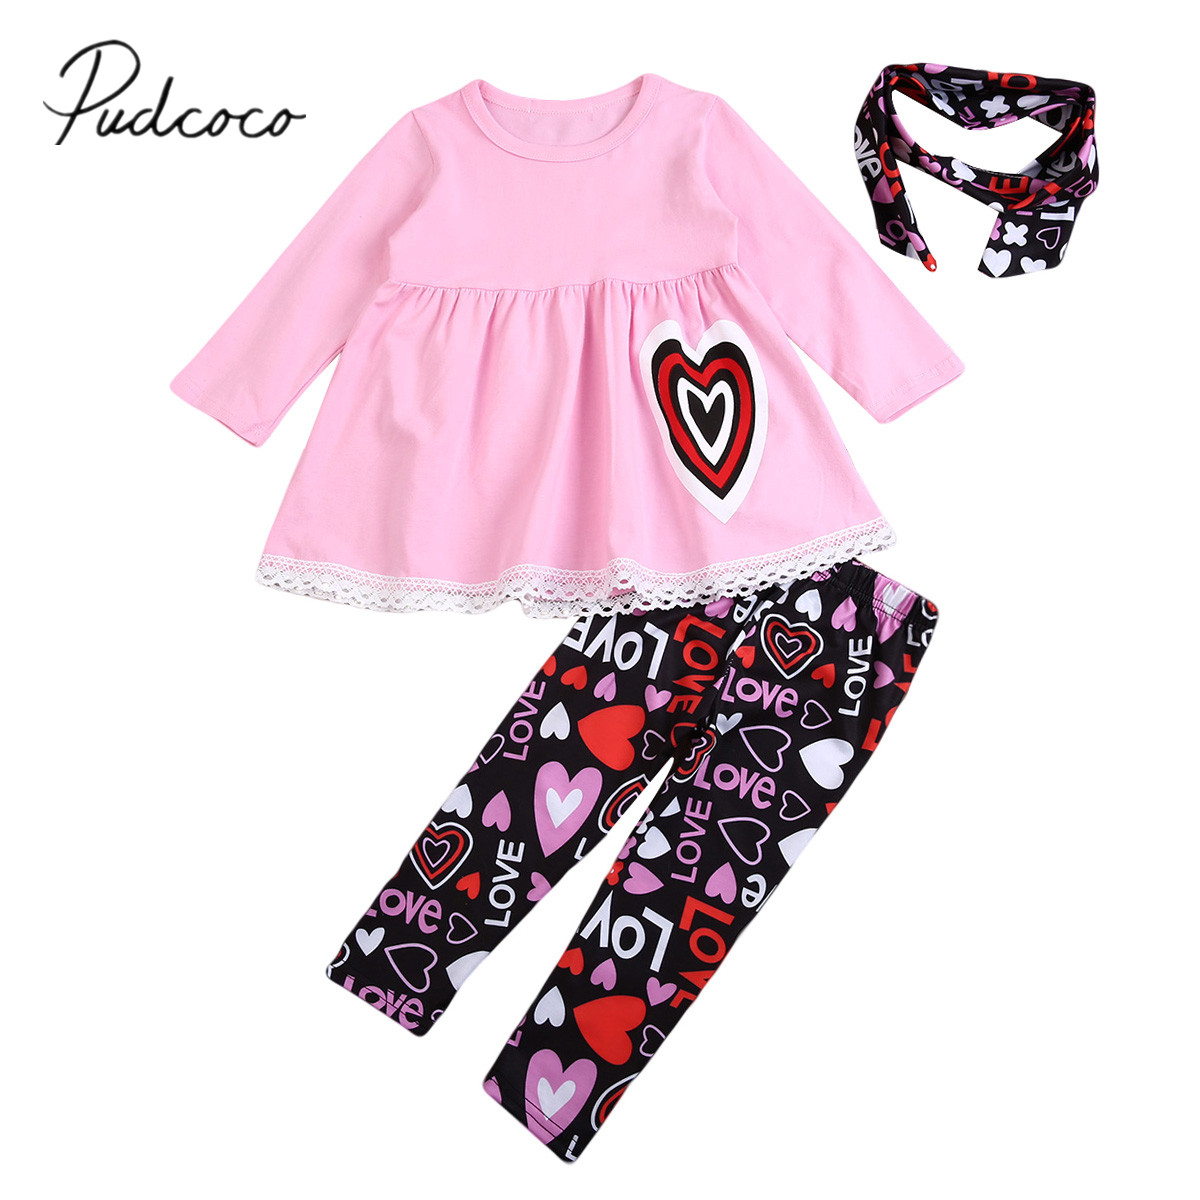 2018 Brand New Toddler Infant Child Baby Girl Long Sleeve T-shirt Heart Tops Pants Headband Autumn Outfit 3pcs Cute Clothes 1-6t Mother & Kids Girls' Clothing